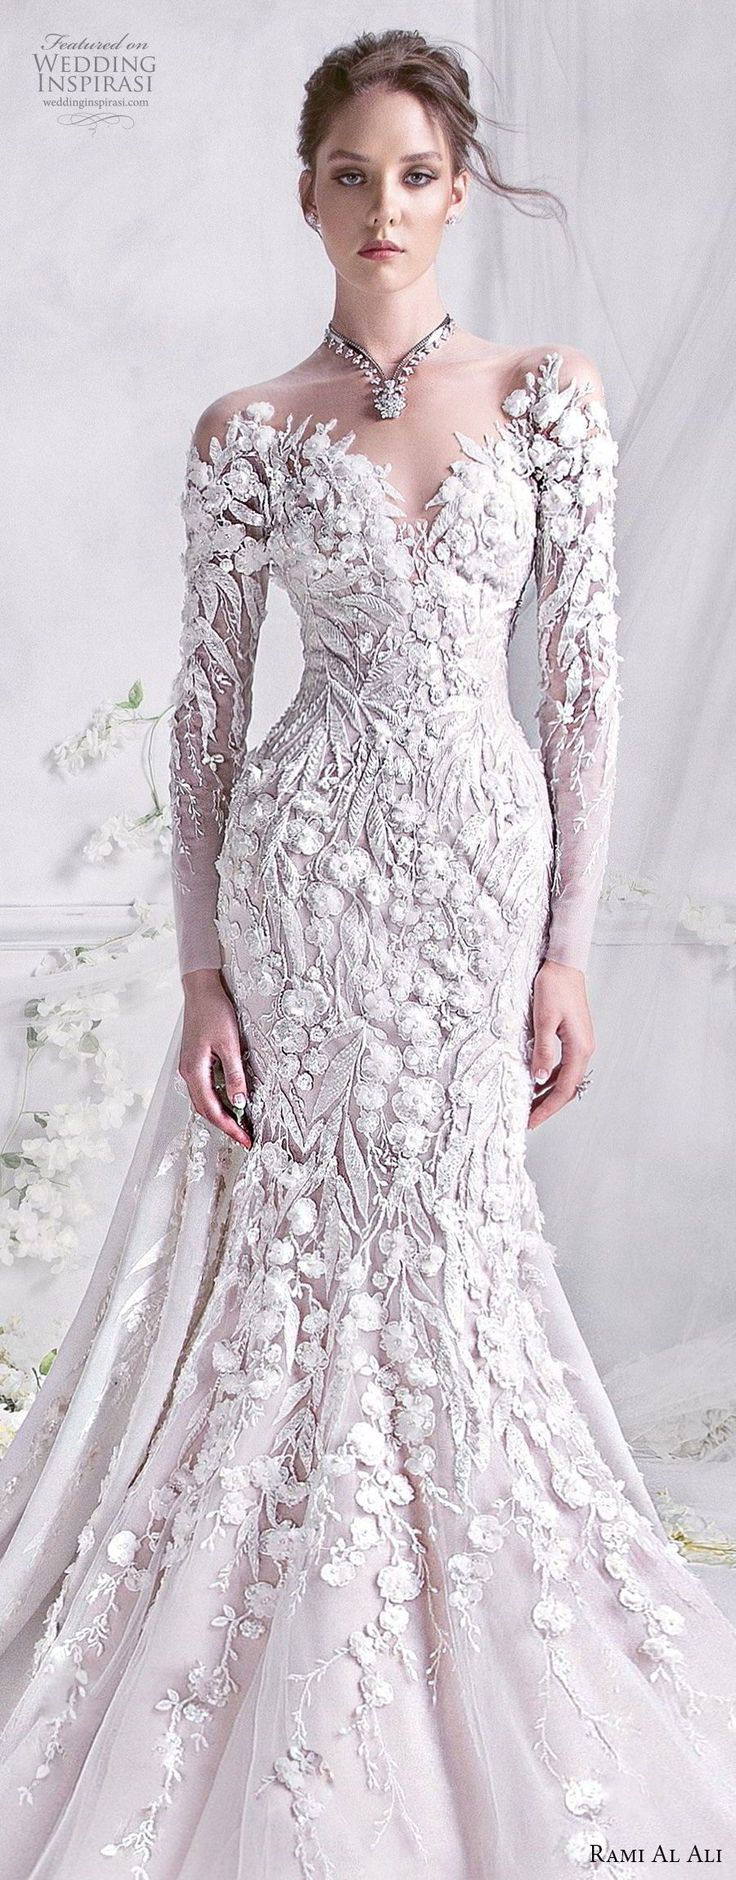 Rami Al Ali 2018 Wedding Dresses #bridalgown